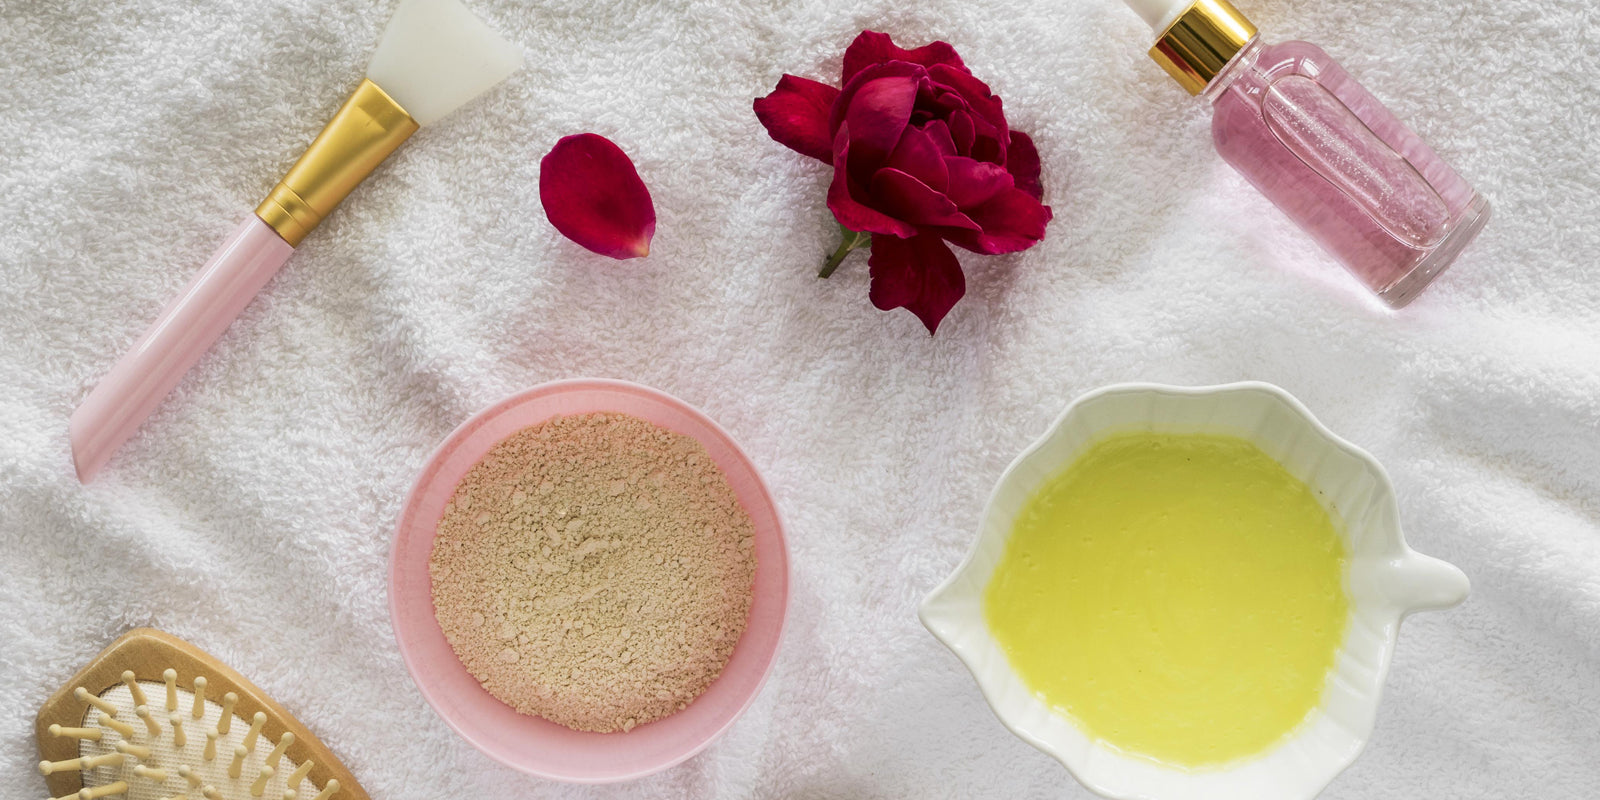 10 Benefits of Using Rose Face Pack for Glowing Skin